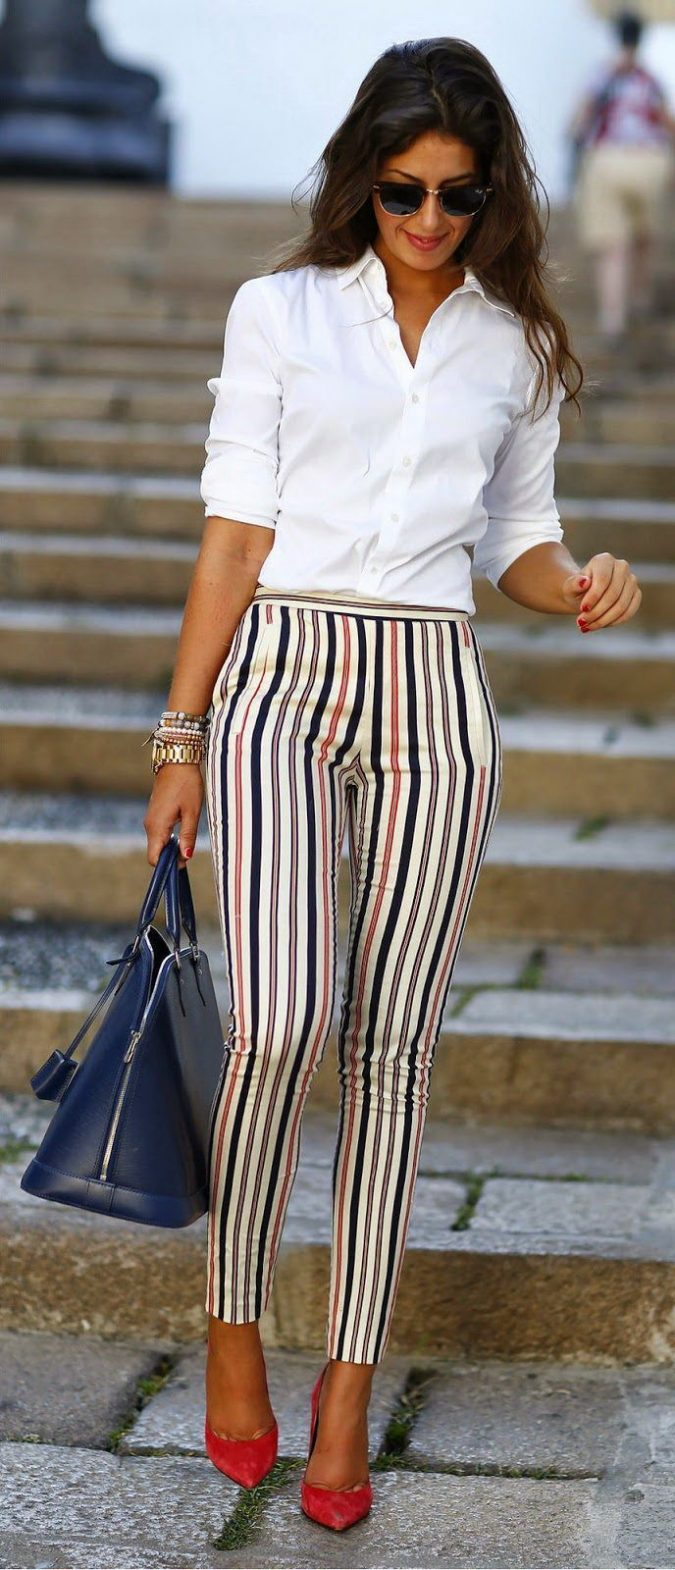 Stripes9-675x1570 6 Main Fashion Trends of Spring & Summer 2017